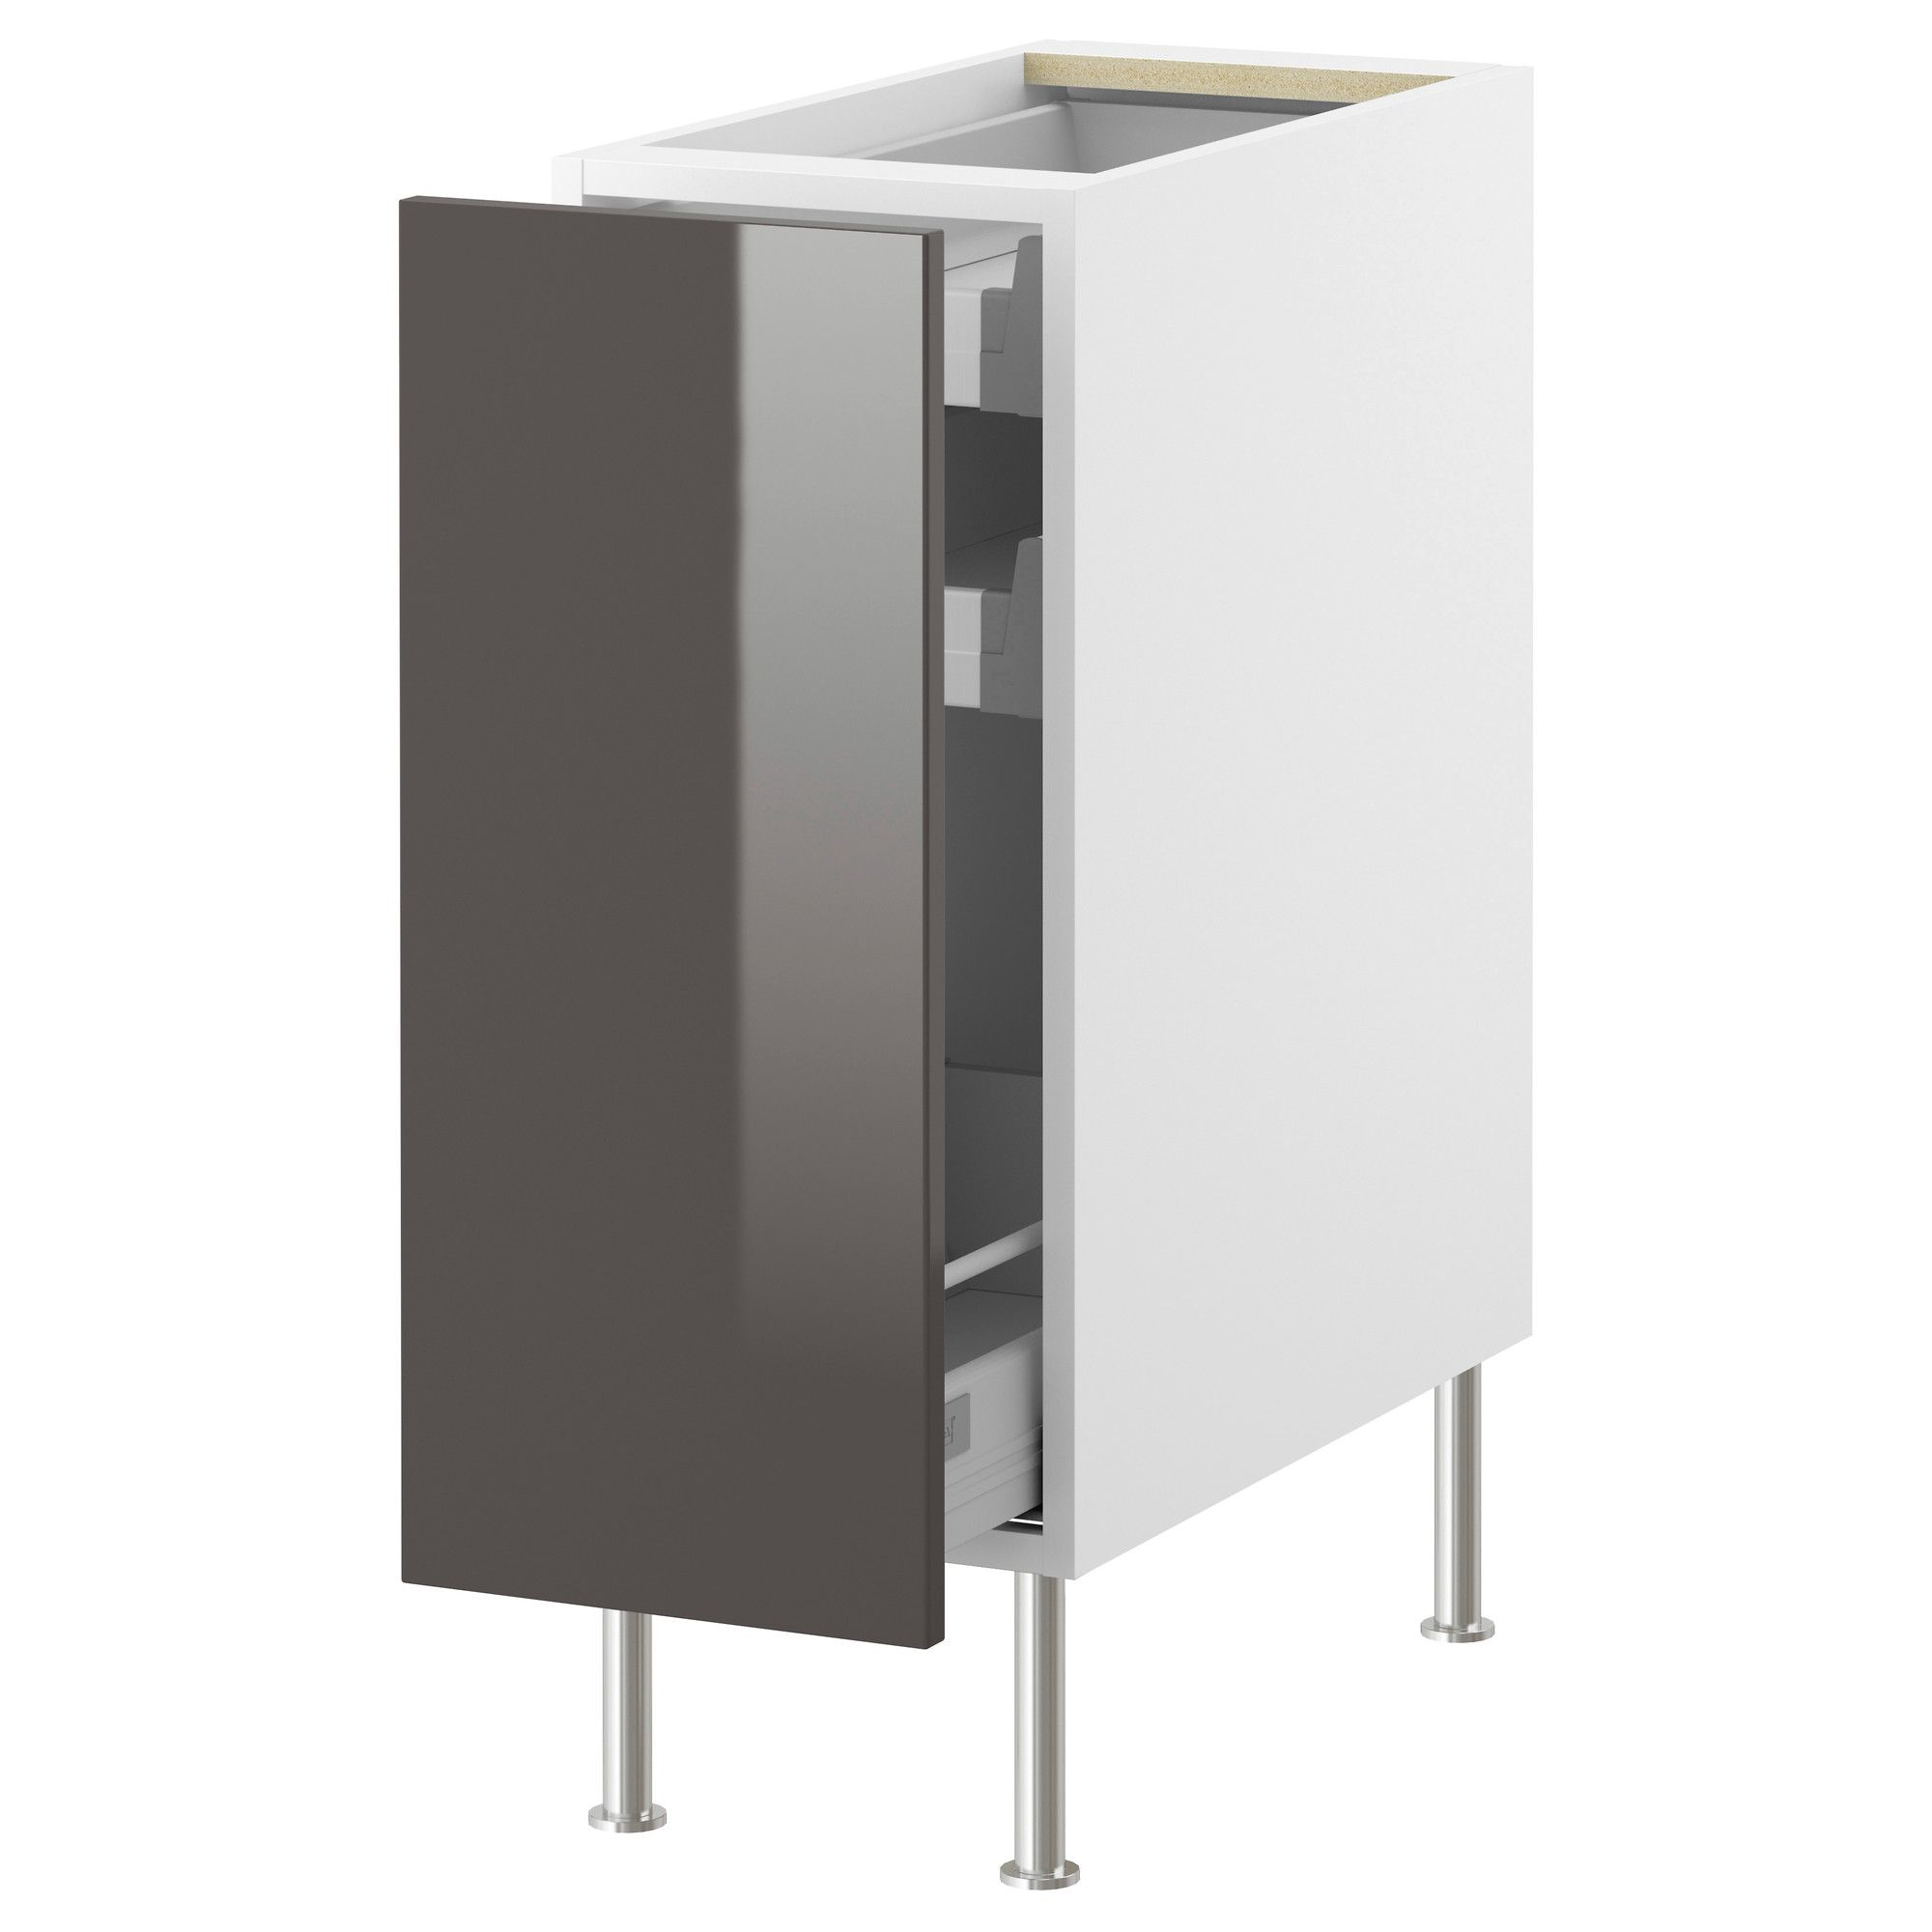 Elegant AKURUM Base Cabinet With Pull Out Storage   White, Abstrakt High Gloss Gray, Part 17